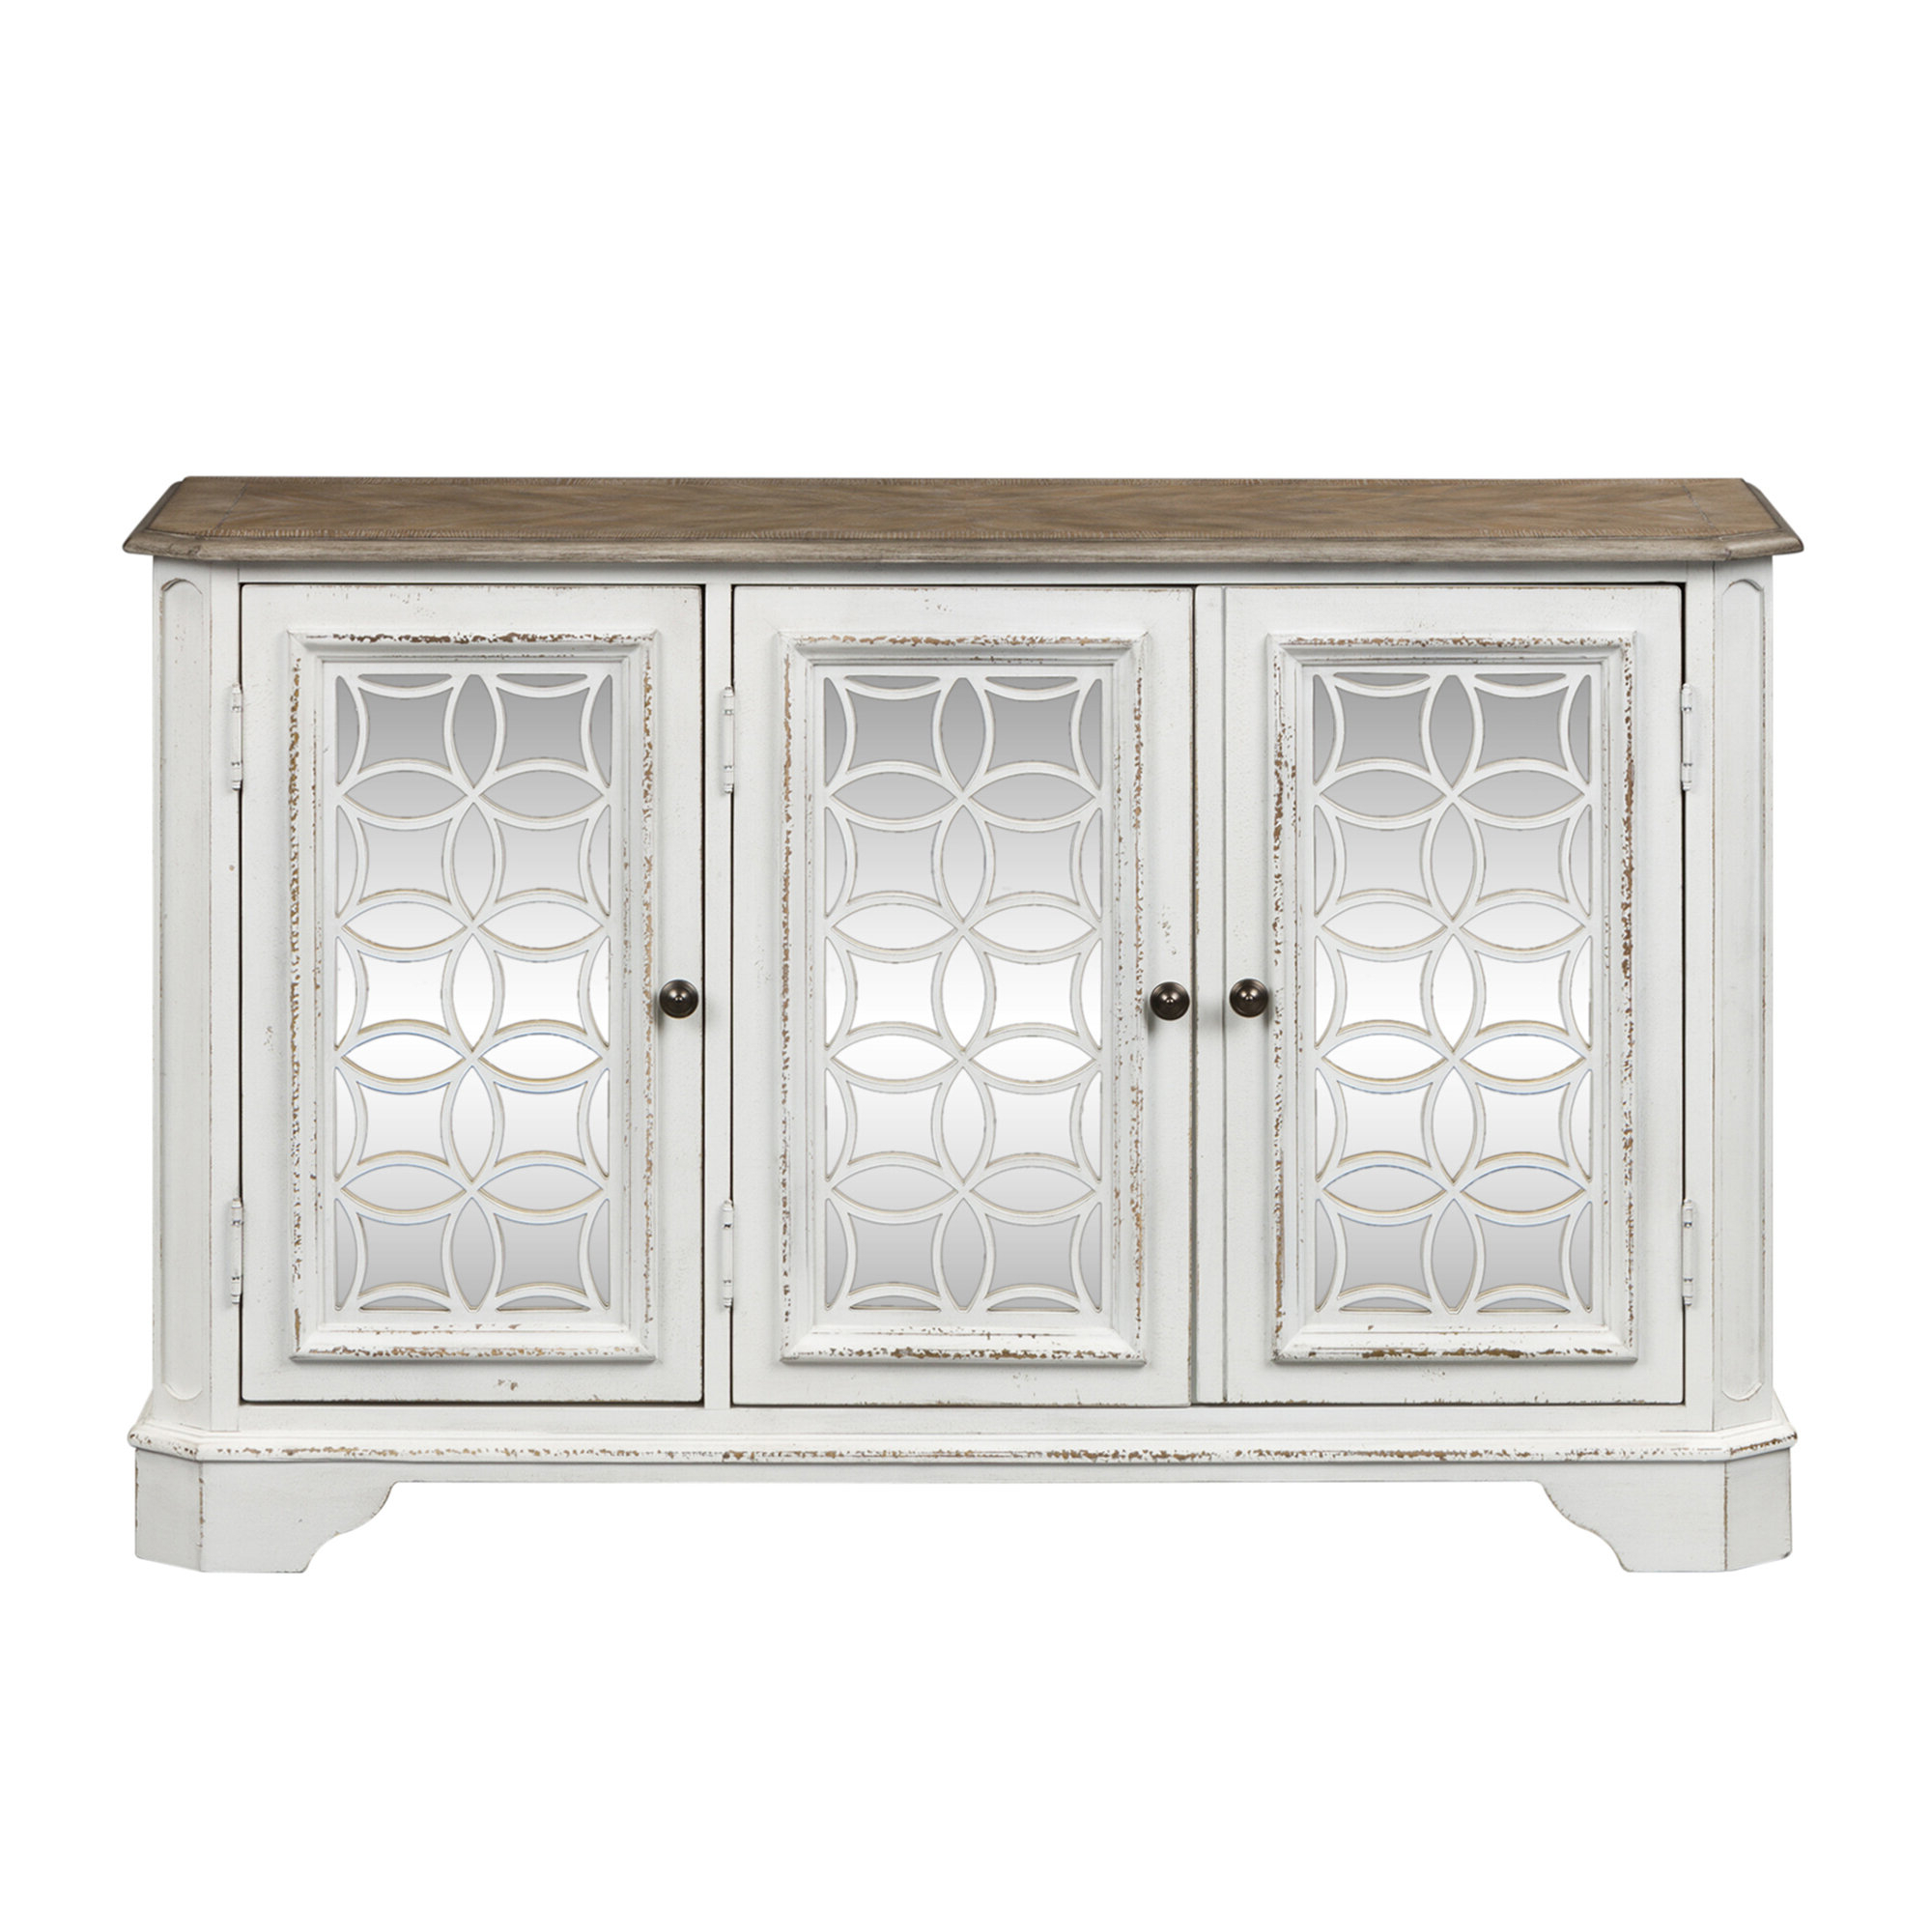 Tavant Sideboard In Most Up To Date Tavant Sideboards (View 11 of 20)